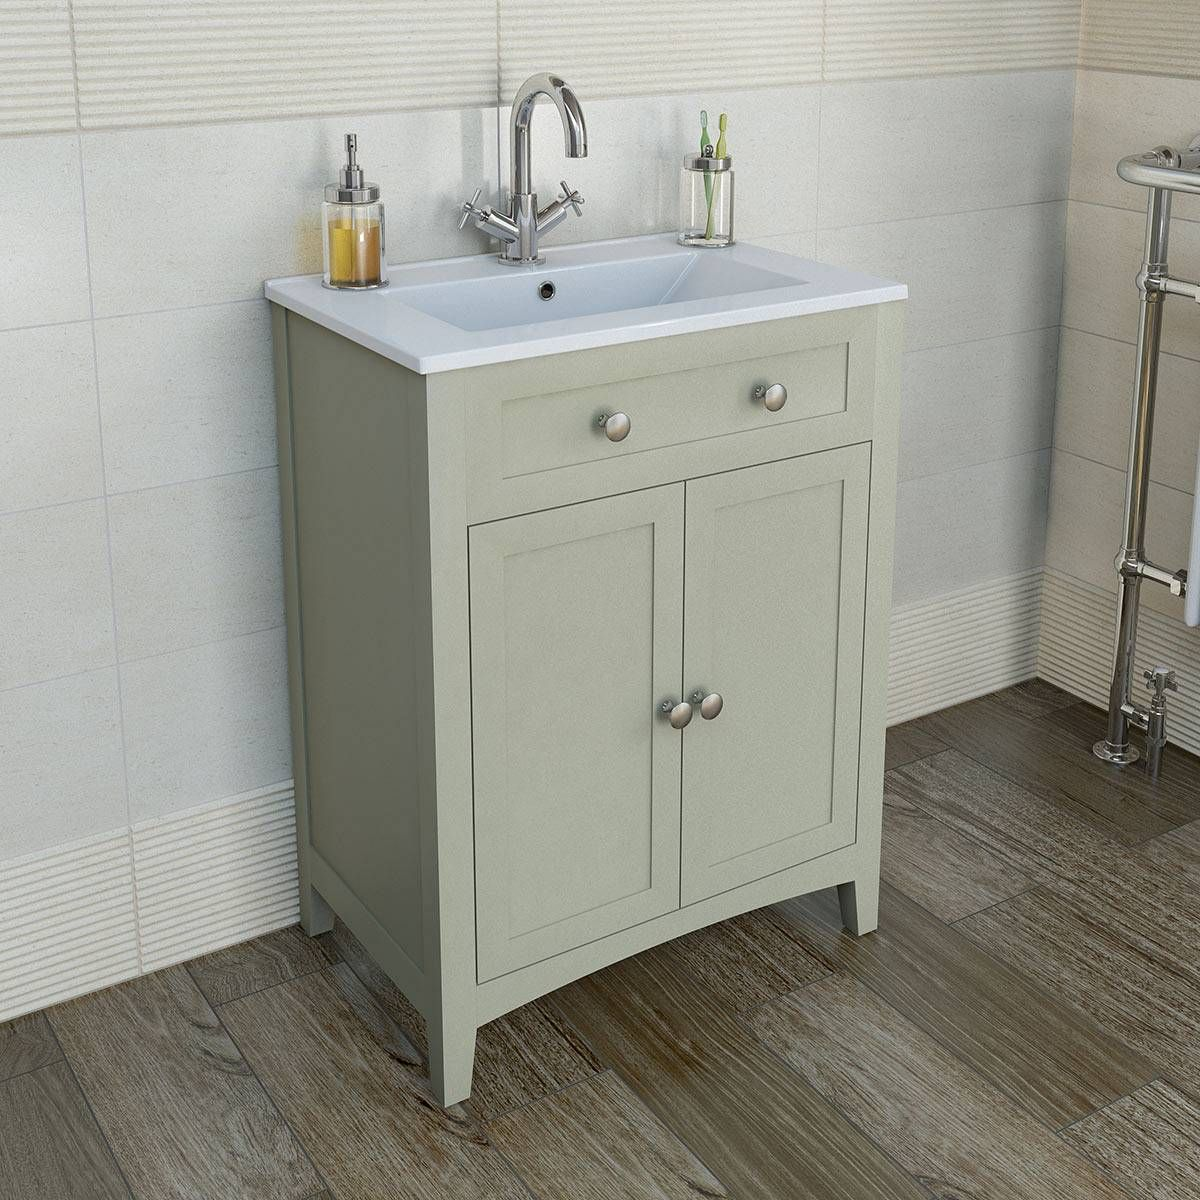 bathroom sink vanity units. Bathroom  complete sink and cupboard package Camberley Sage 600 Door Unit Basin now only from Victoria Plumb https victoriaplum com